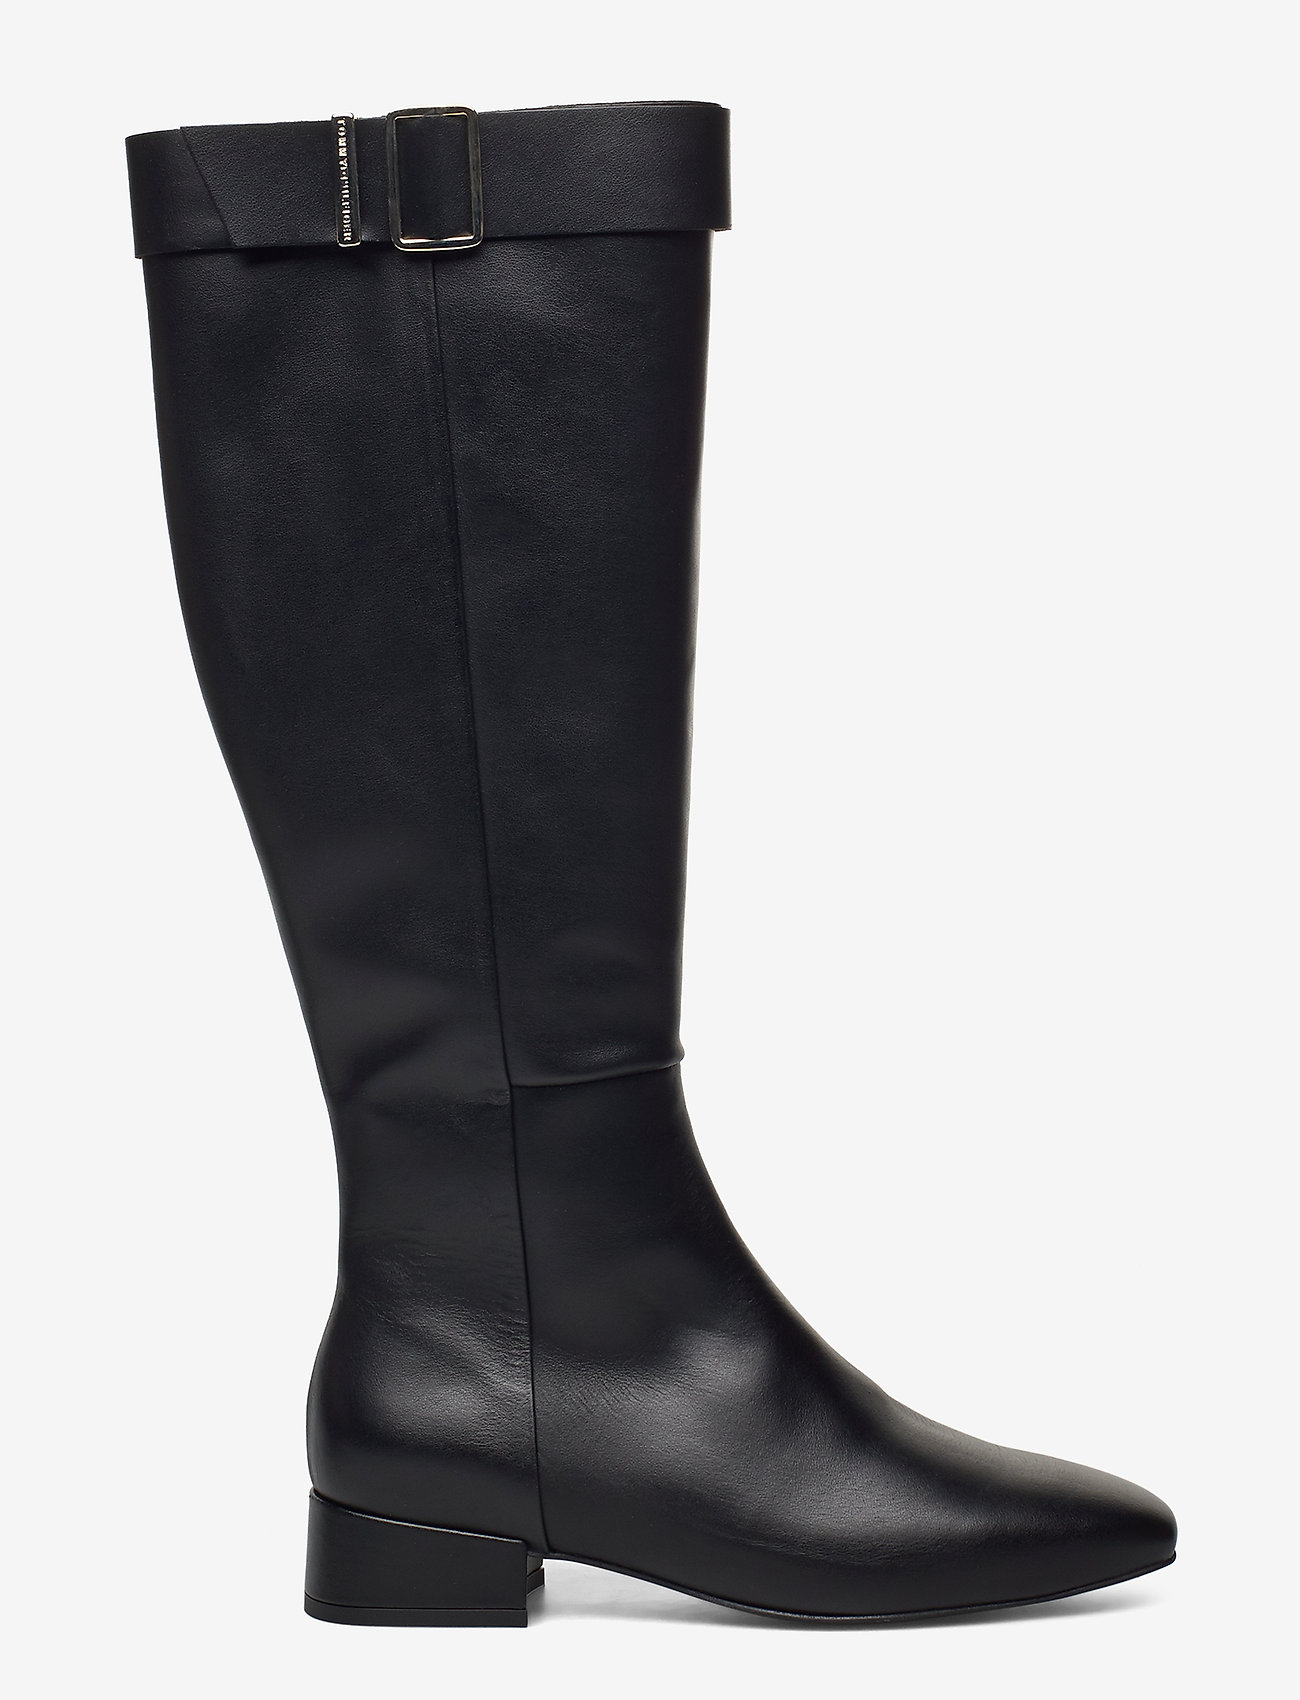 Tommy Hilfiger - LEATHER SQUARE TOE LONG BOOT - long boots - black - 1